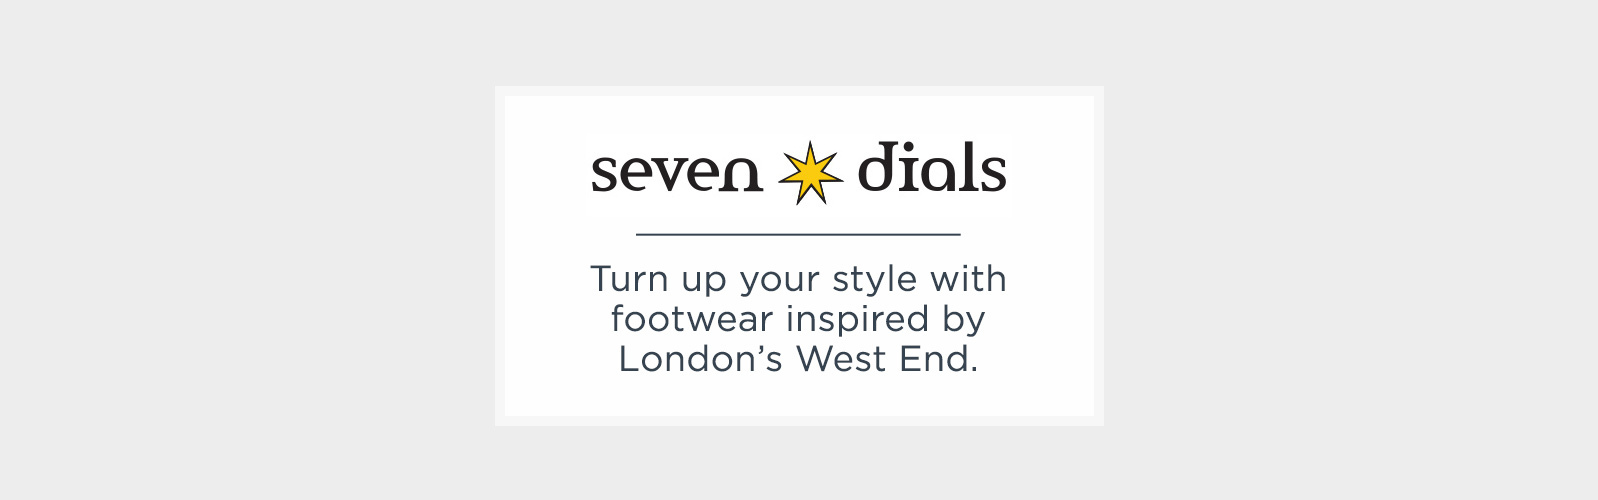 Seven Dials.Turn up your style with footwear inspired by London's West End.